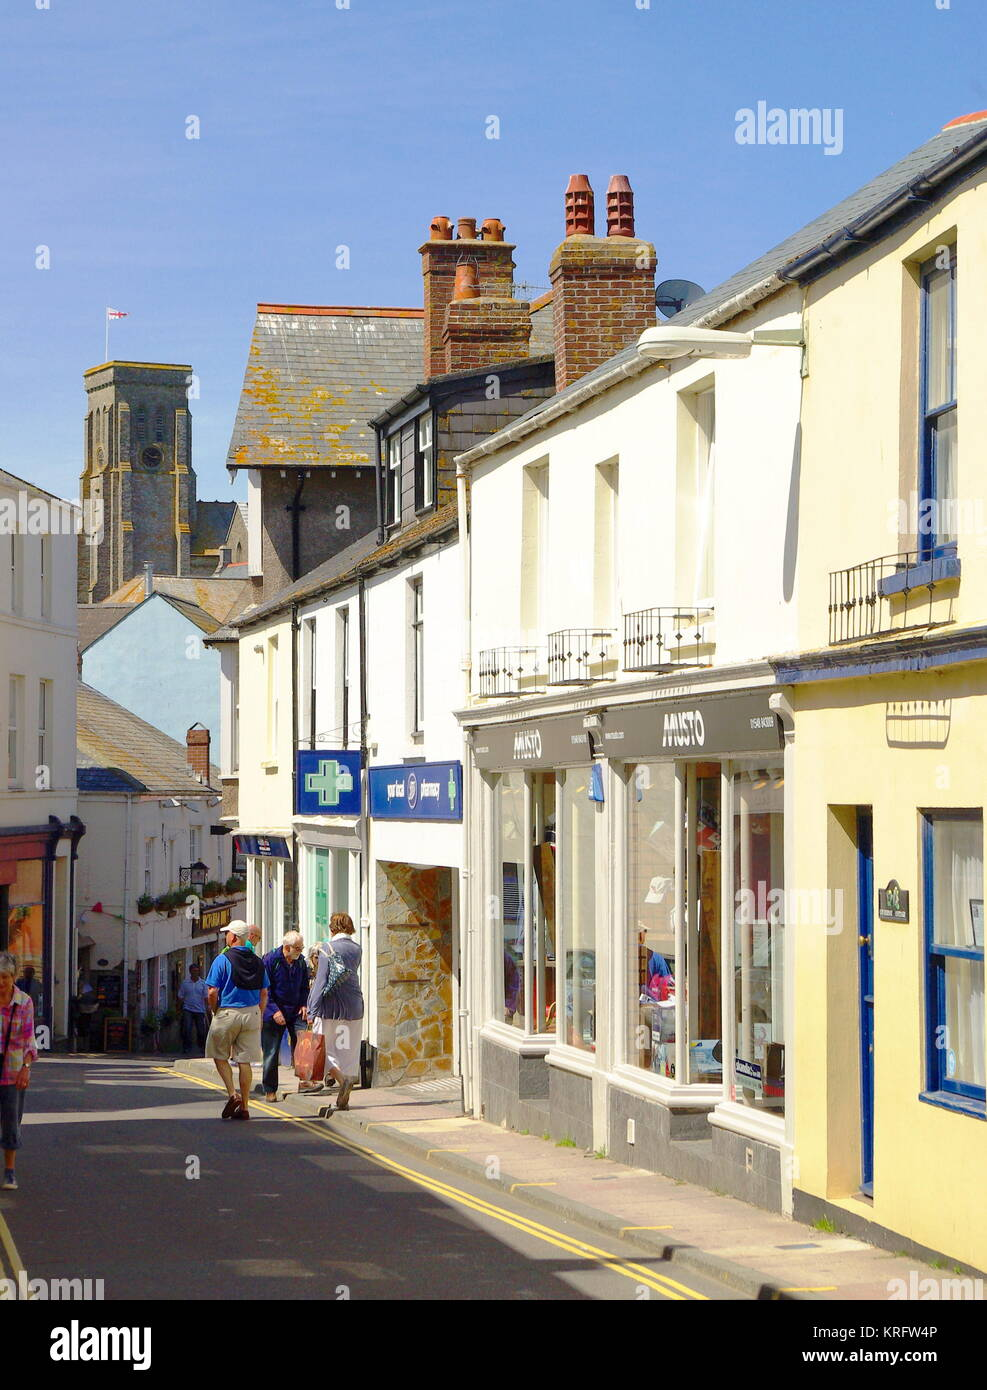 A narrow shopping street in Salcombe, Devon.      Date: 2014 - Stock Image